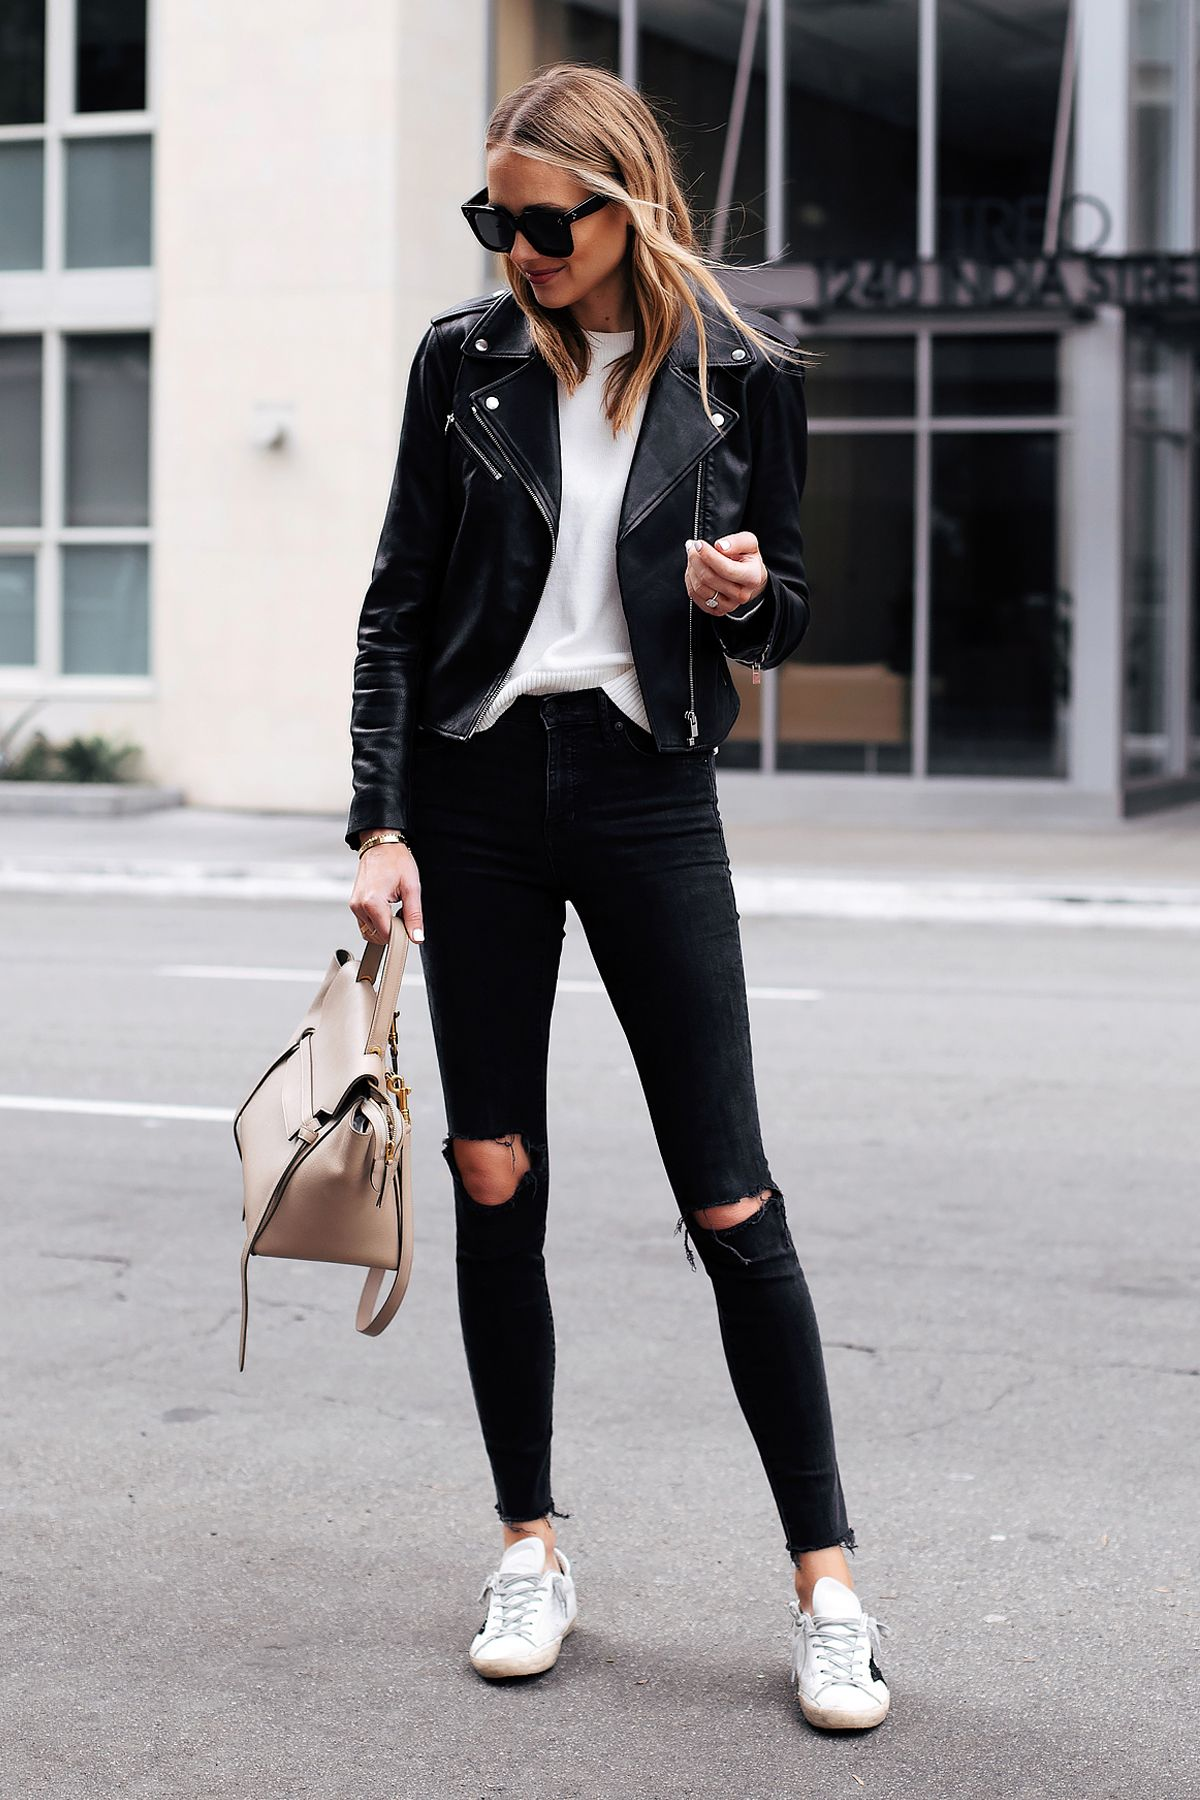 Fashion Jackson Capsule Wardrobe Wearing Club Monaco Black Leather Jacket White Sweater Madewell Black Ripped Skinny Jeans Golden Goose Sneakers #leatherjacketoutfit